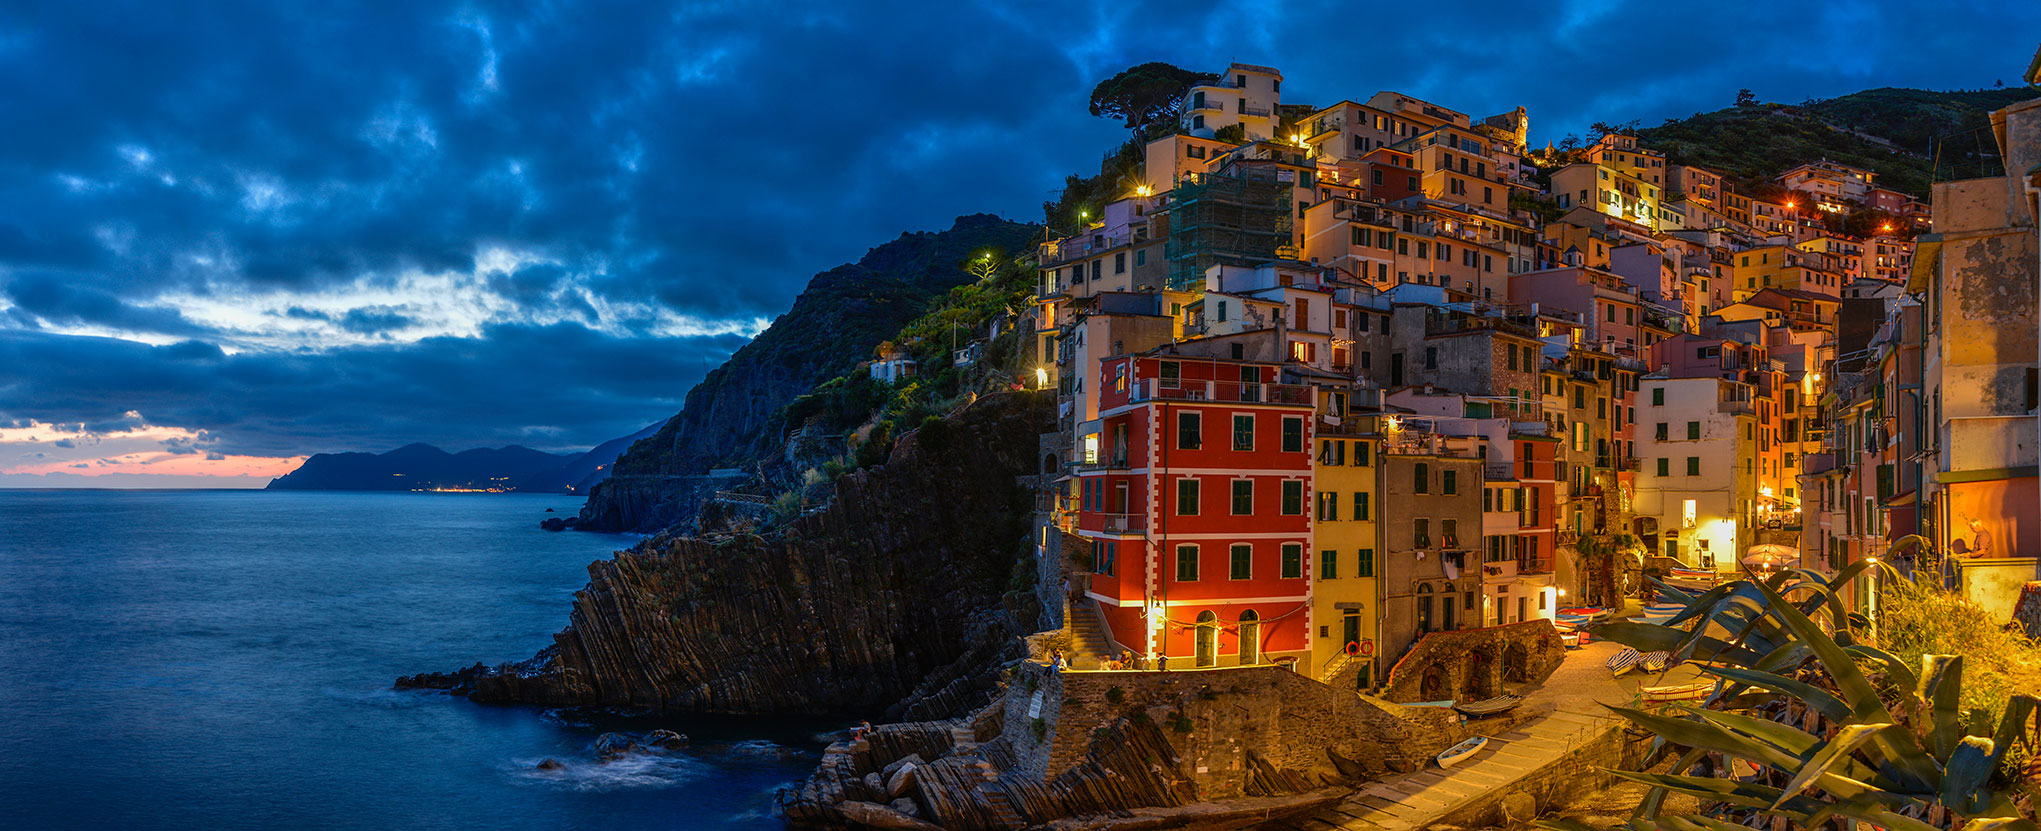 Dusk panorama of Riomaggiore. The lights of Monterosso are visible in the distance.